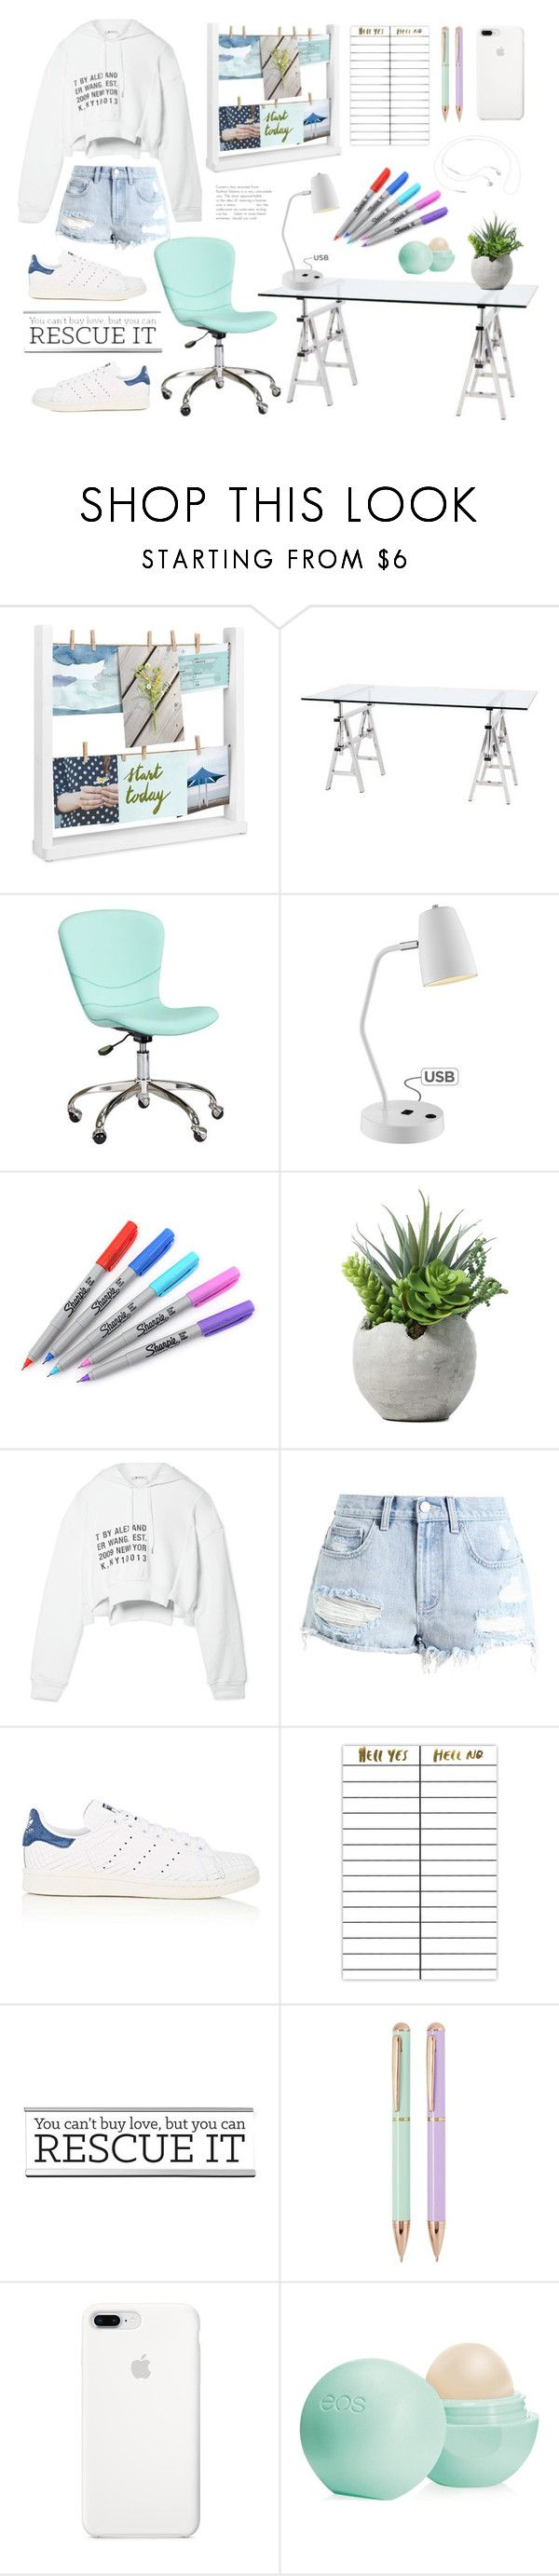 """On my desk"" by makimpm ❤ liked on Polyvore featuring Umbra, Eichholtz, PBteen, Lite Source, Sharpie, T By Alexander Wang, Billabong, adidas, Terrapin Stationers and Eos"